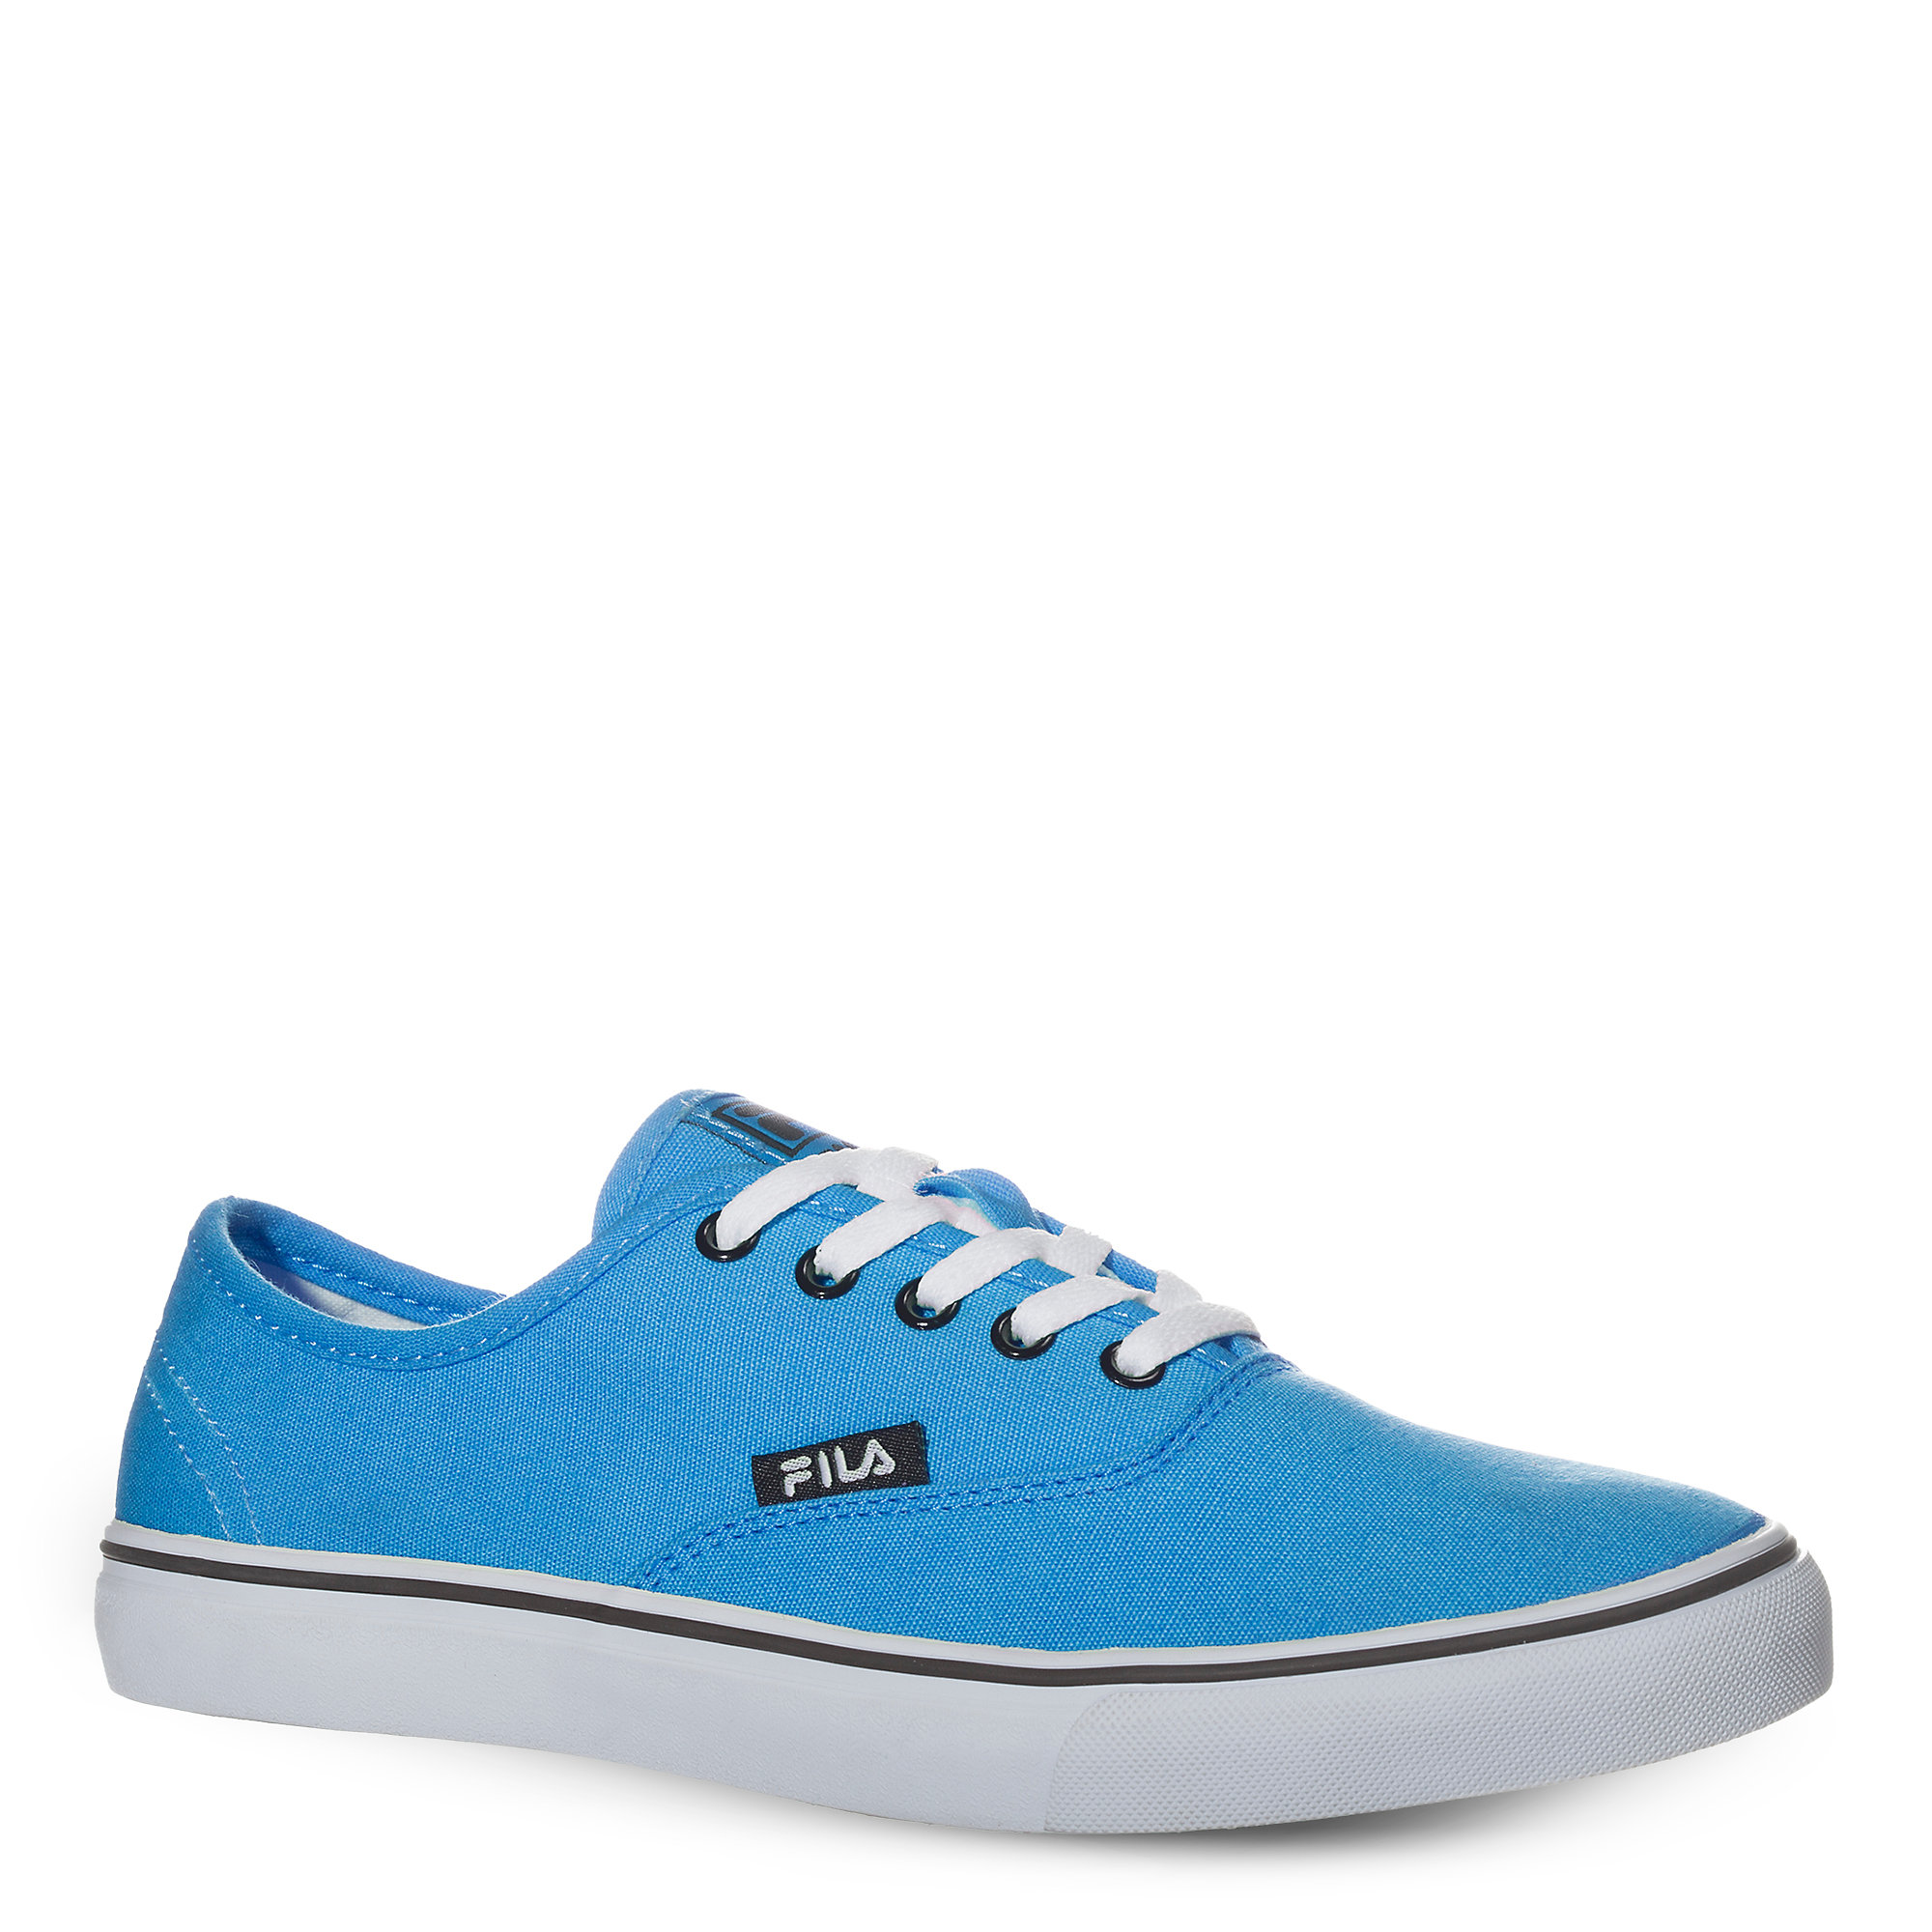 Fila Men S Classic Canvas Shoes